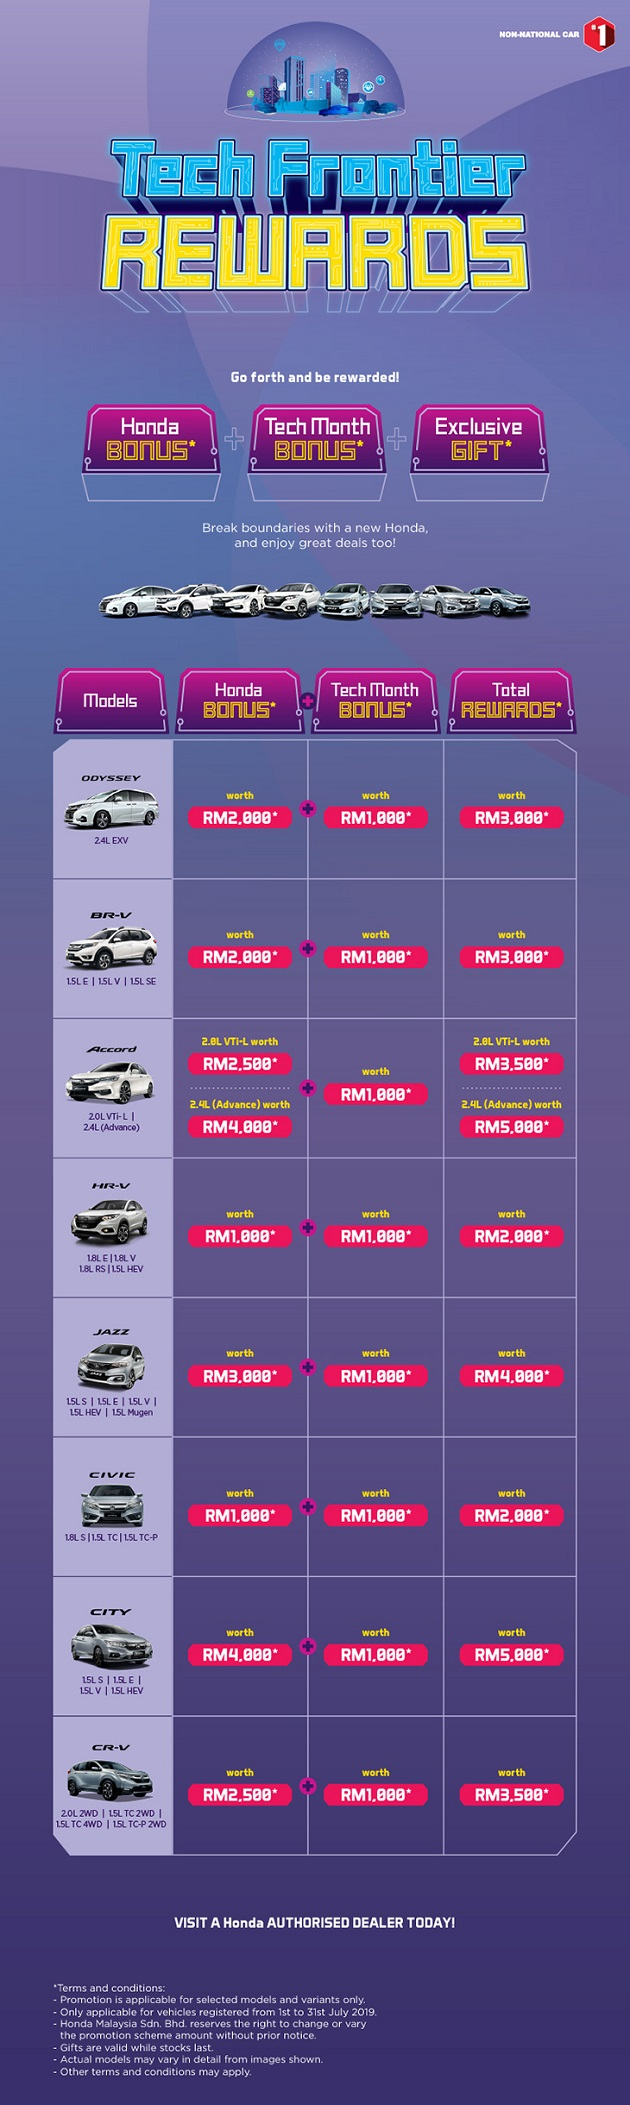 Honda Promotion July 2019